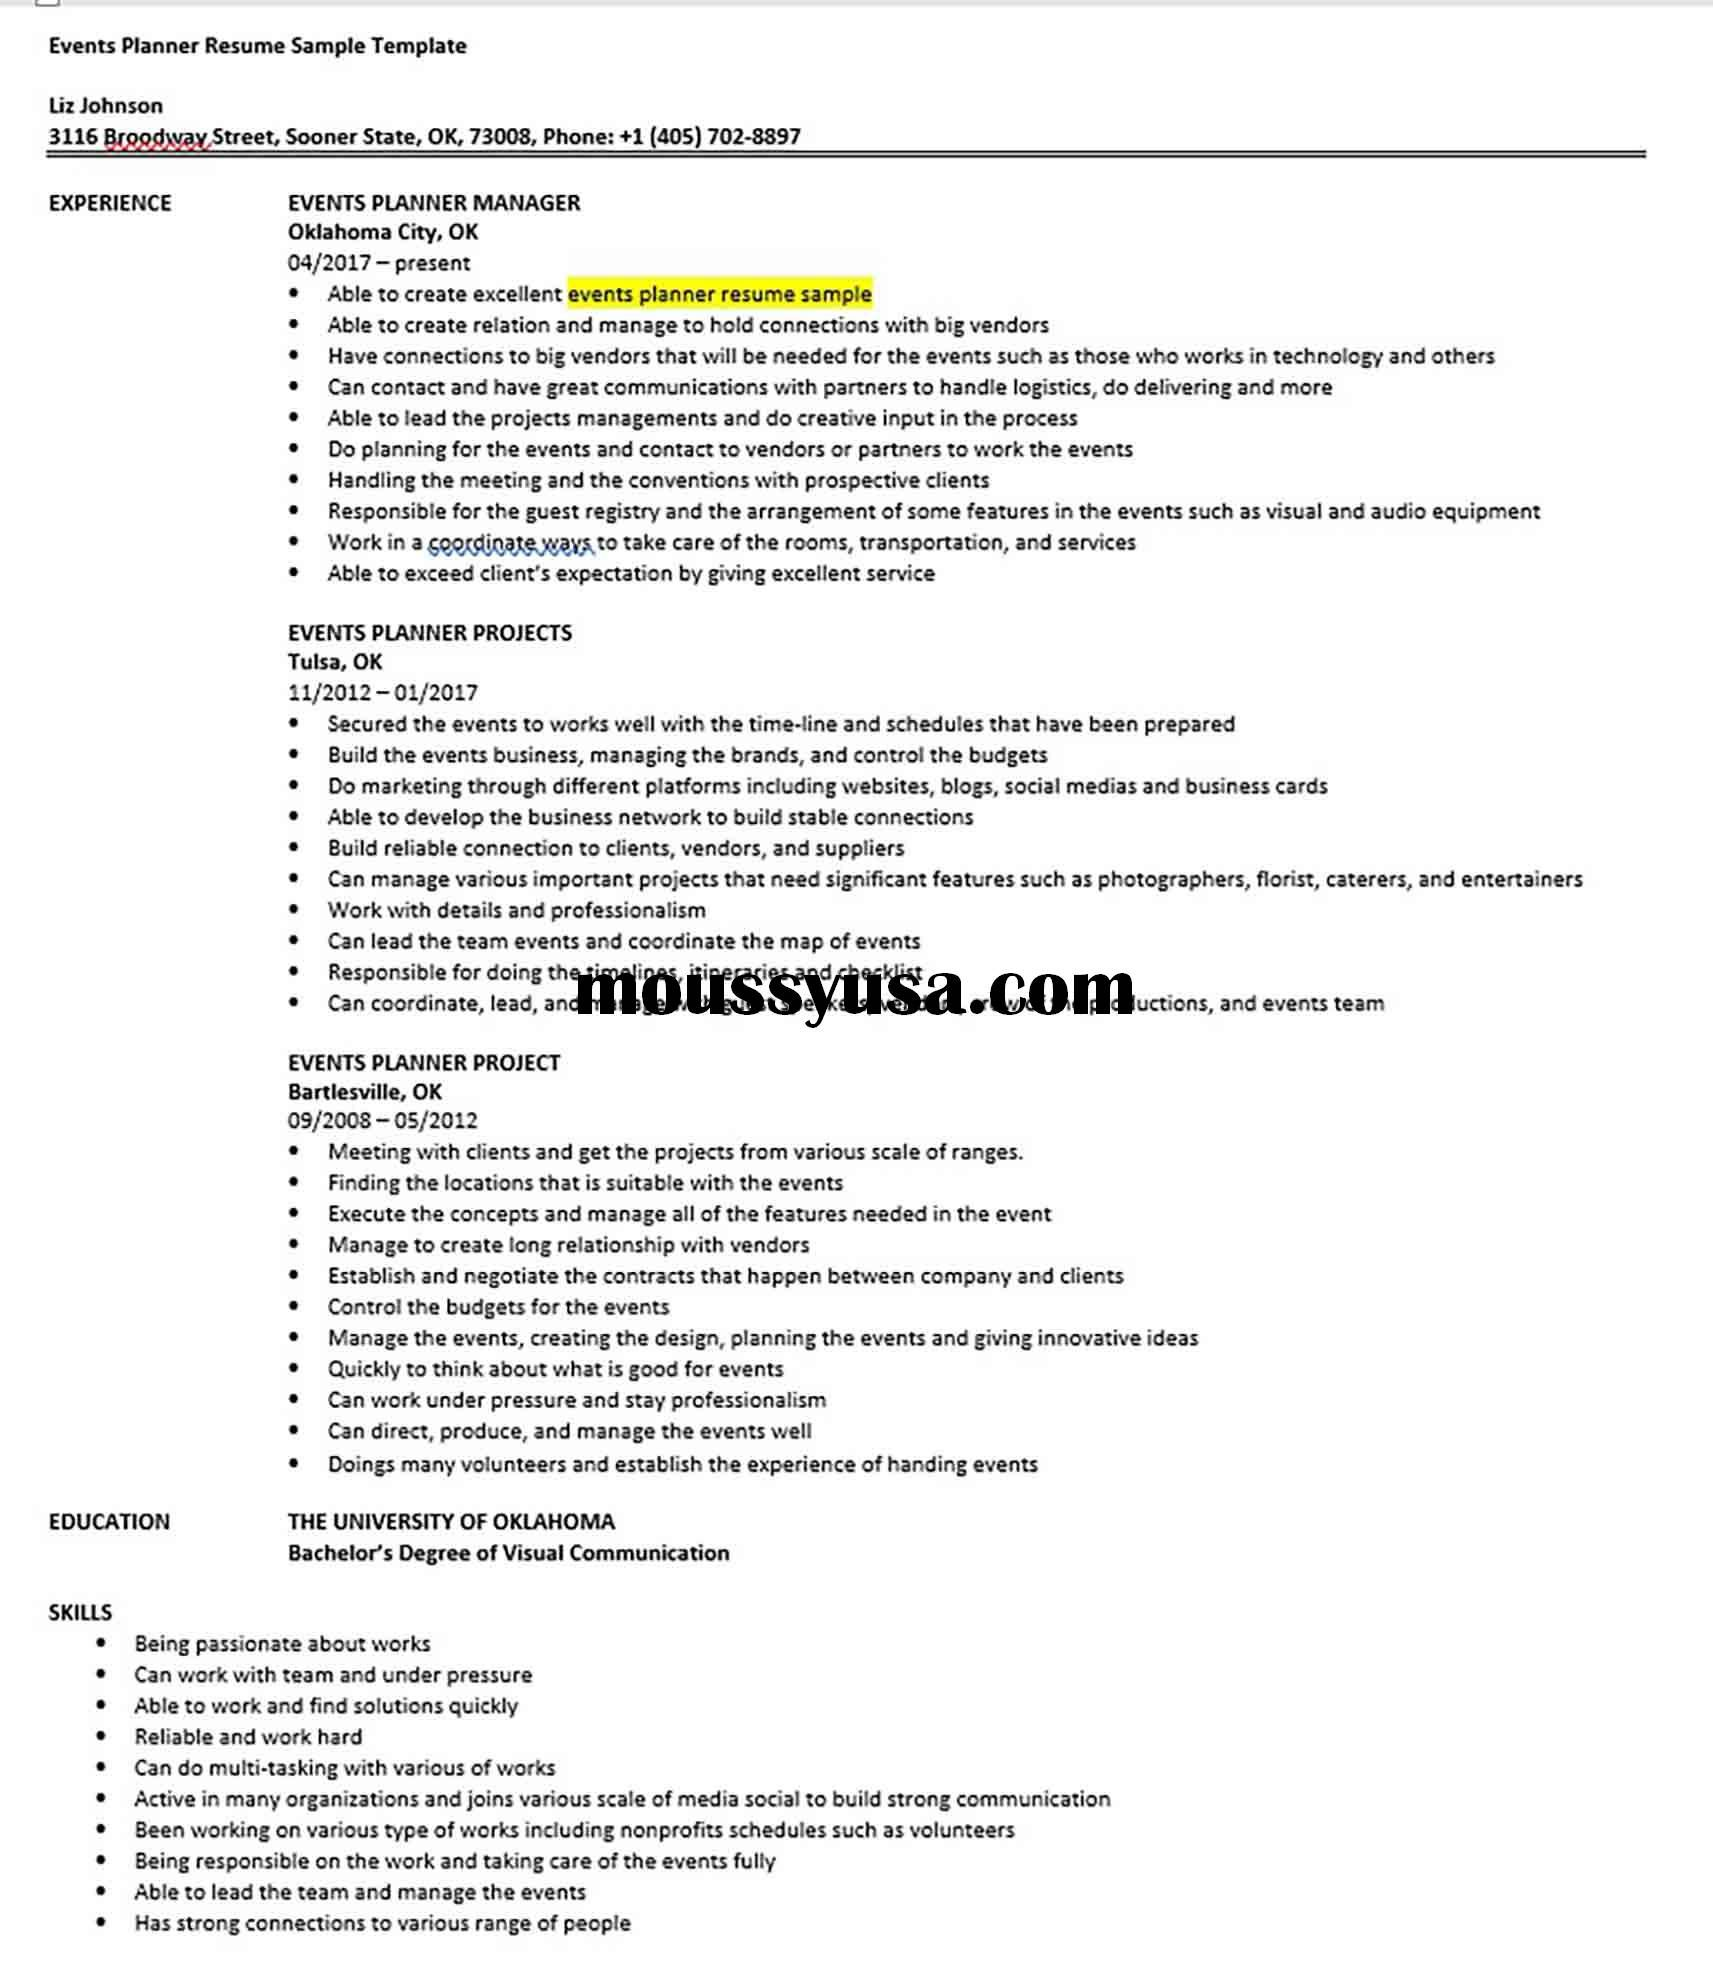 events planner resume sample template recent graduate sales lady with experience cv free download word document